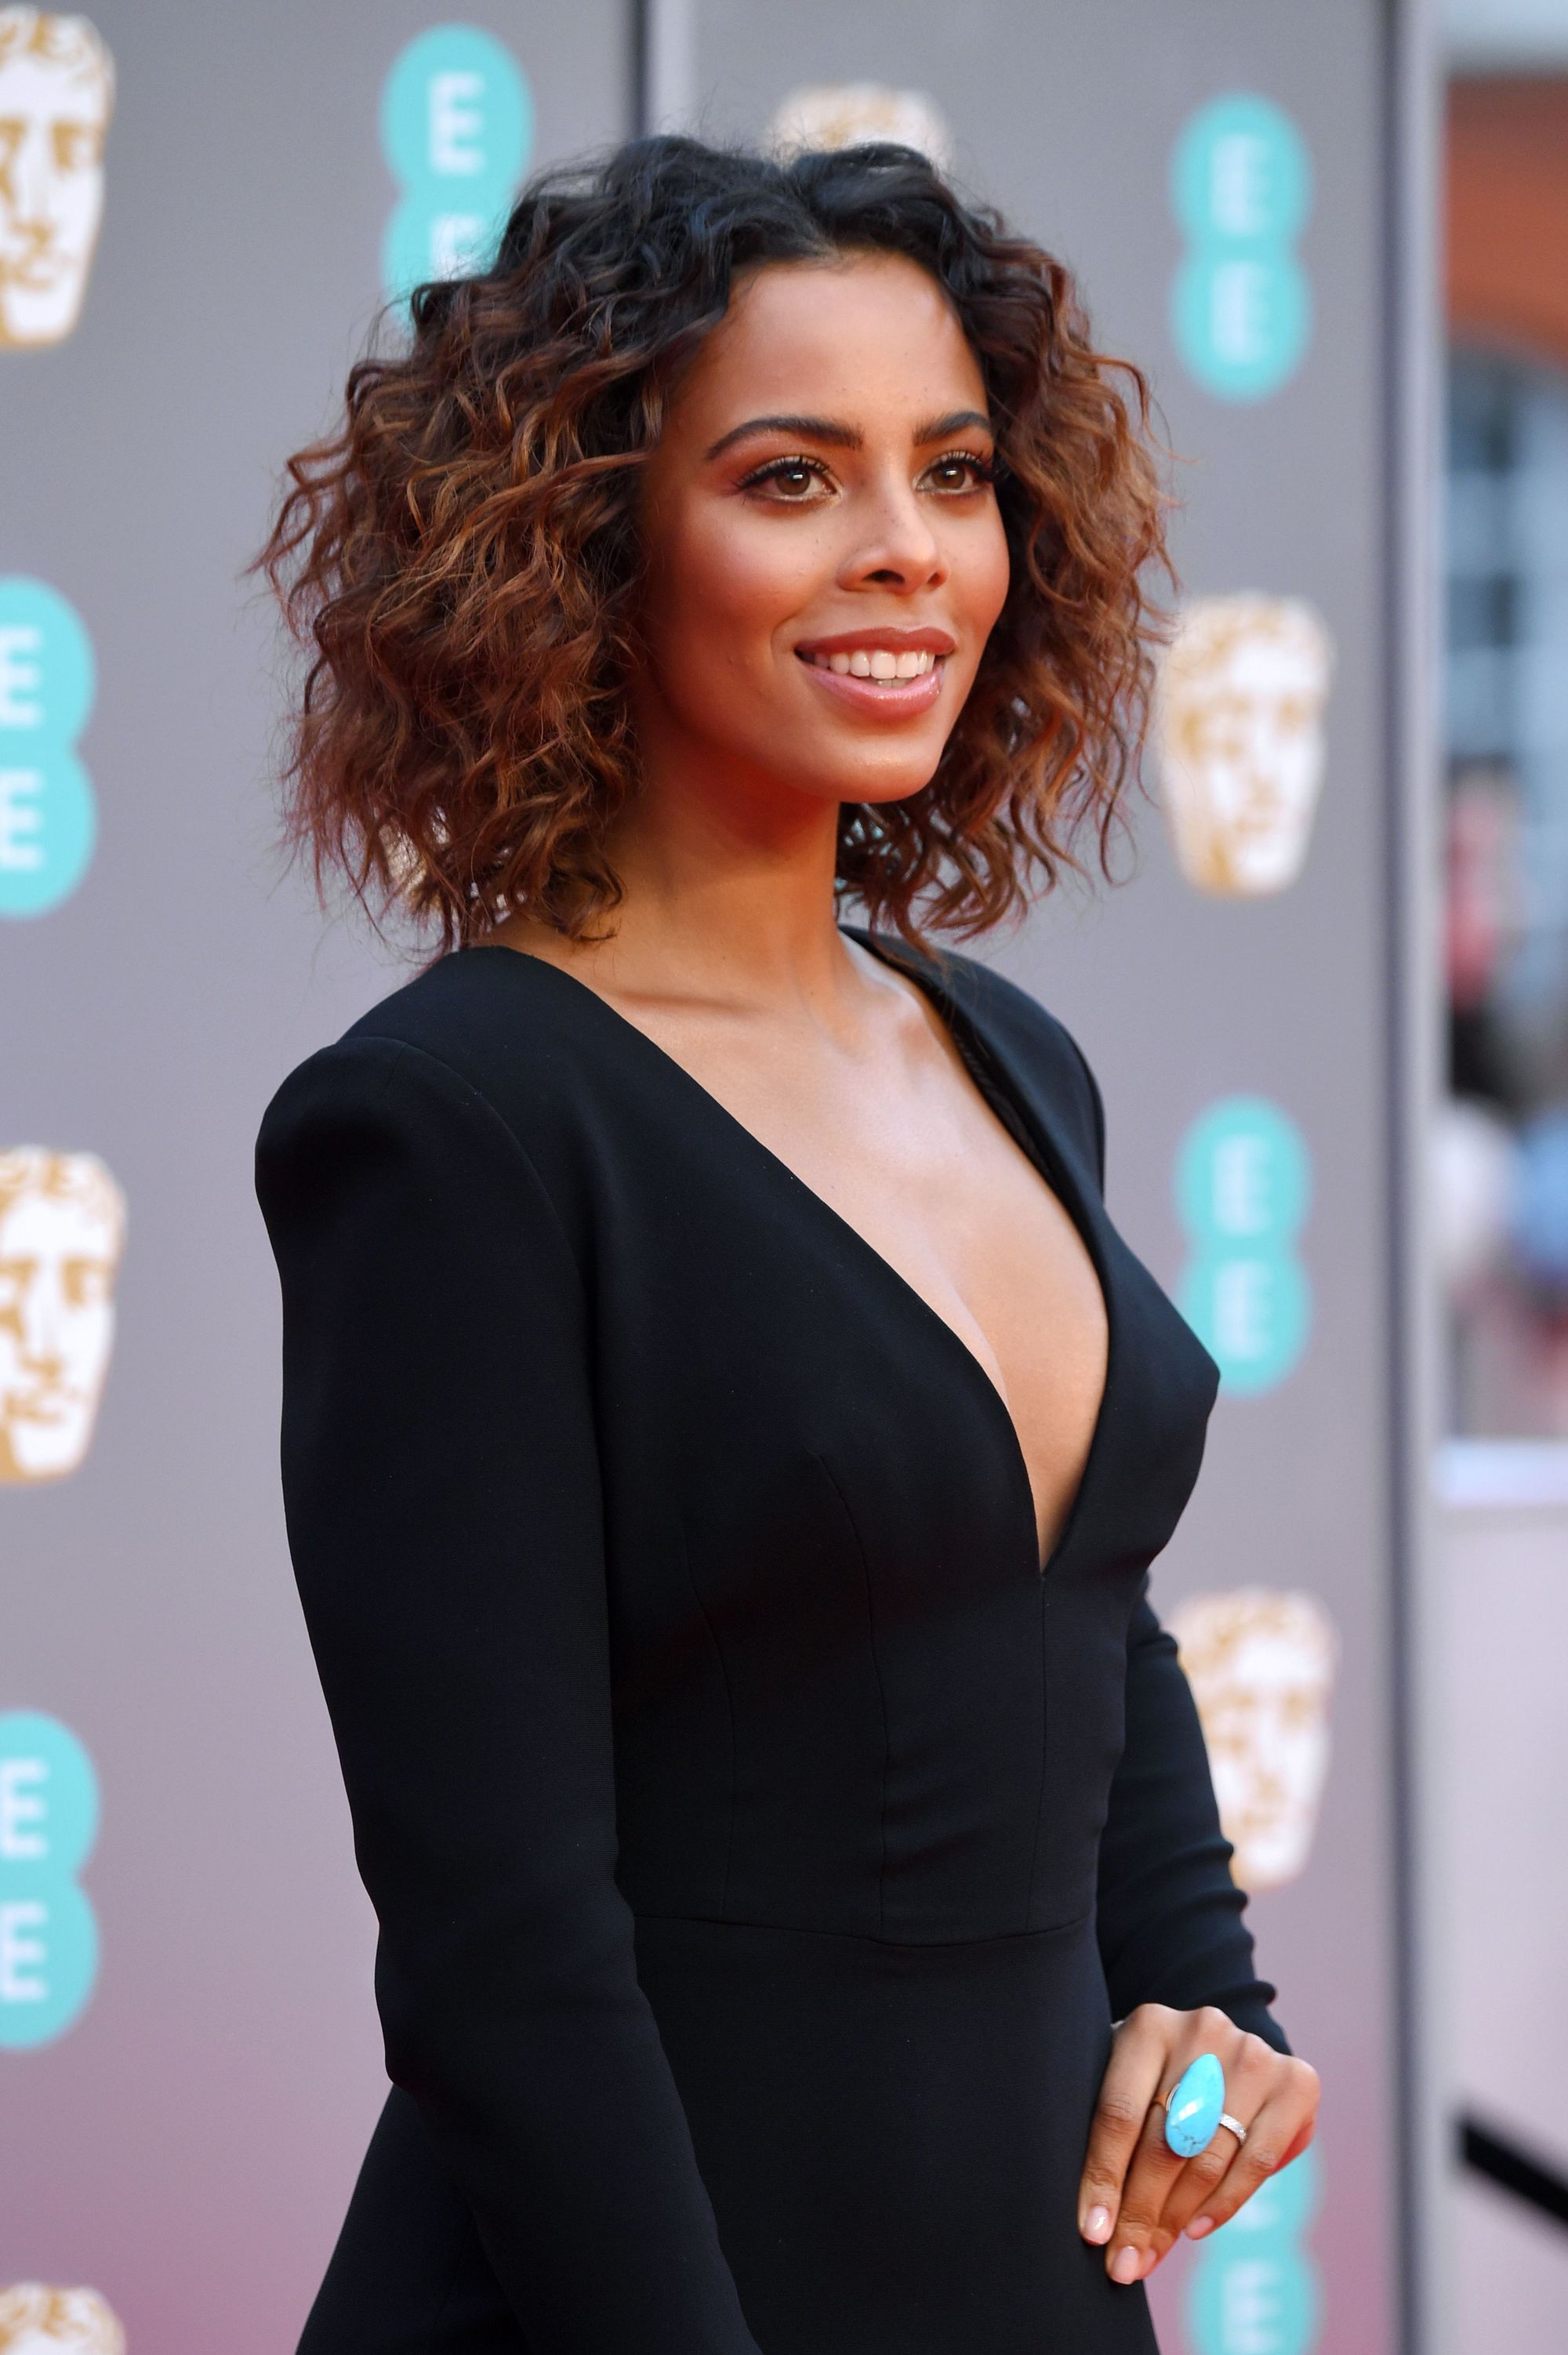 rochelle humes shoulder length brown curly hair